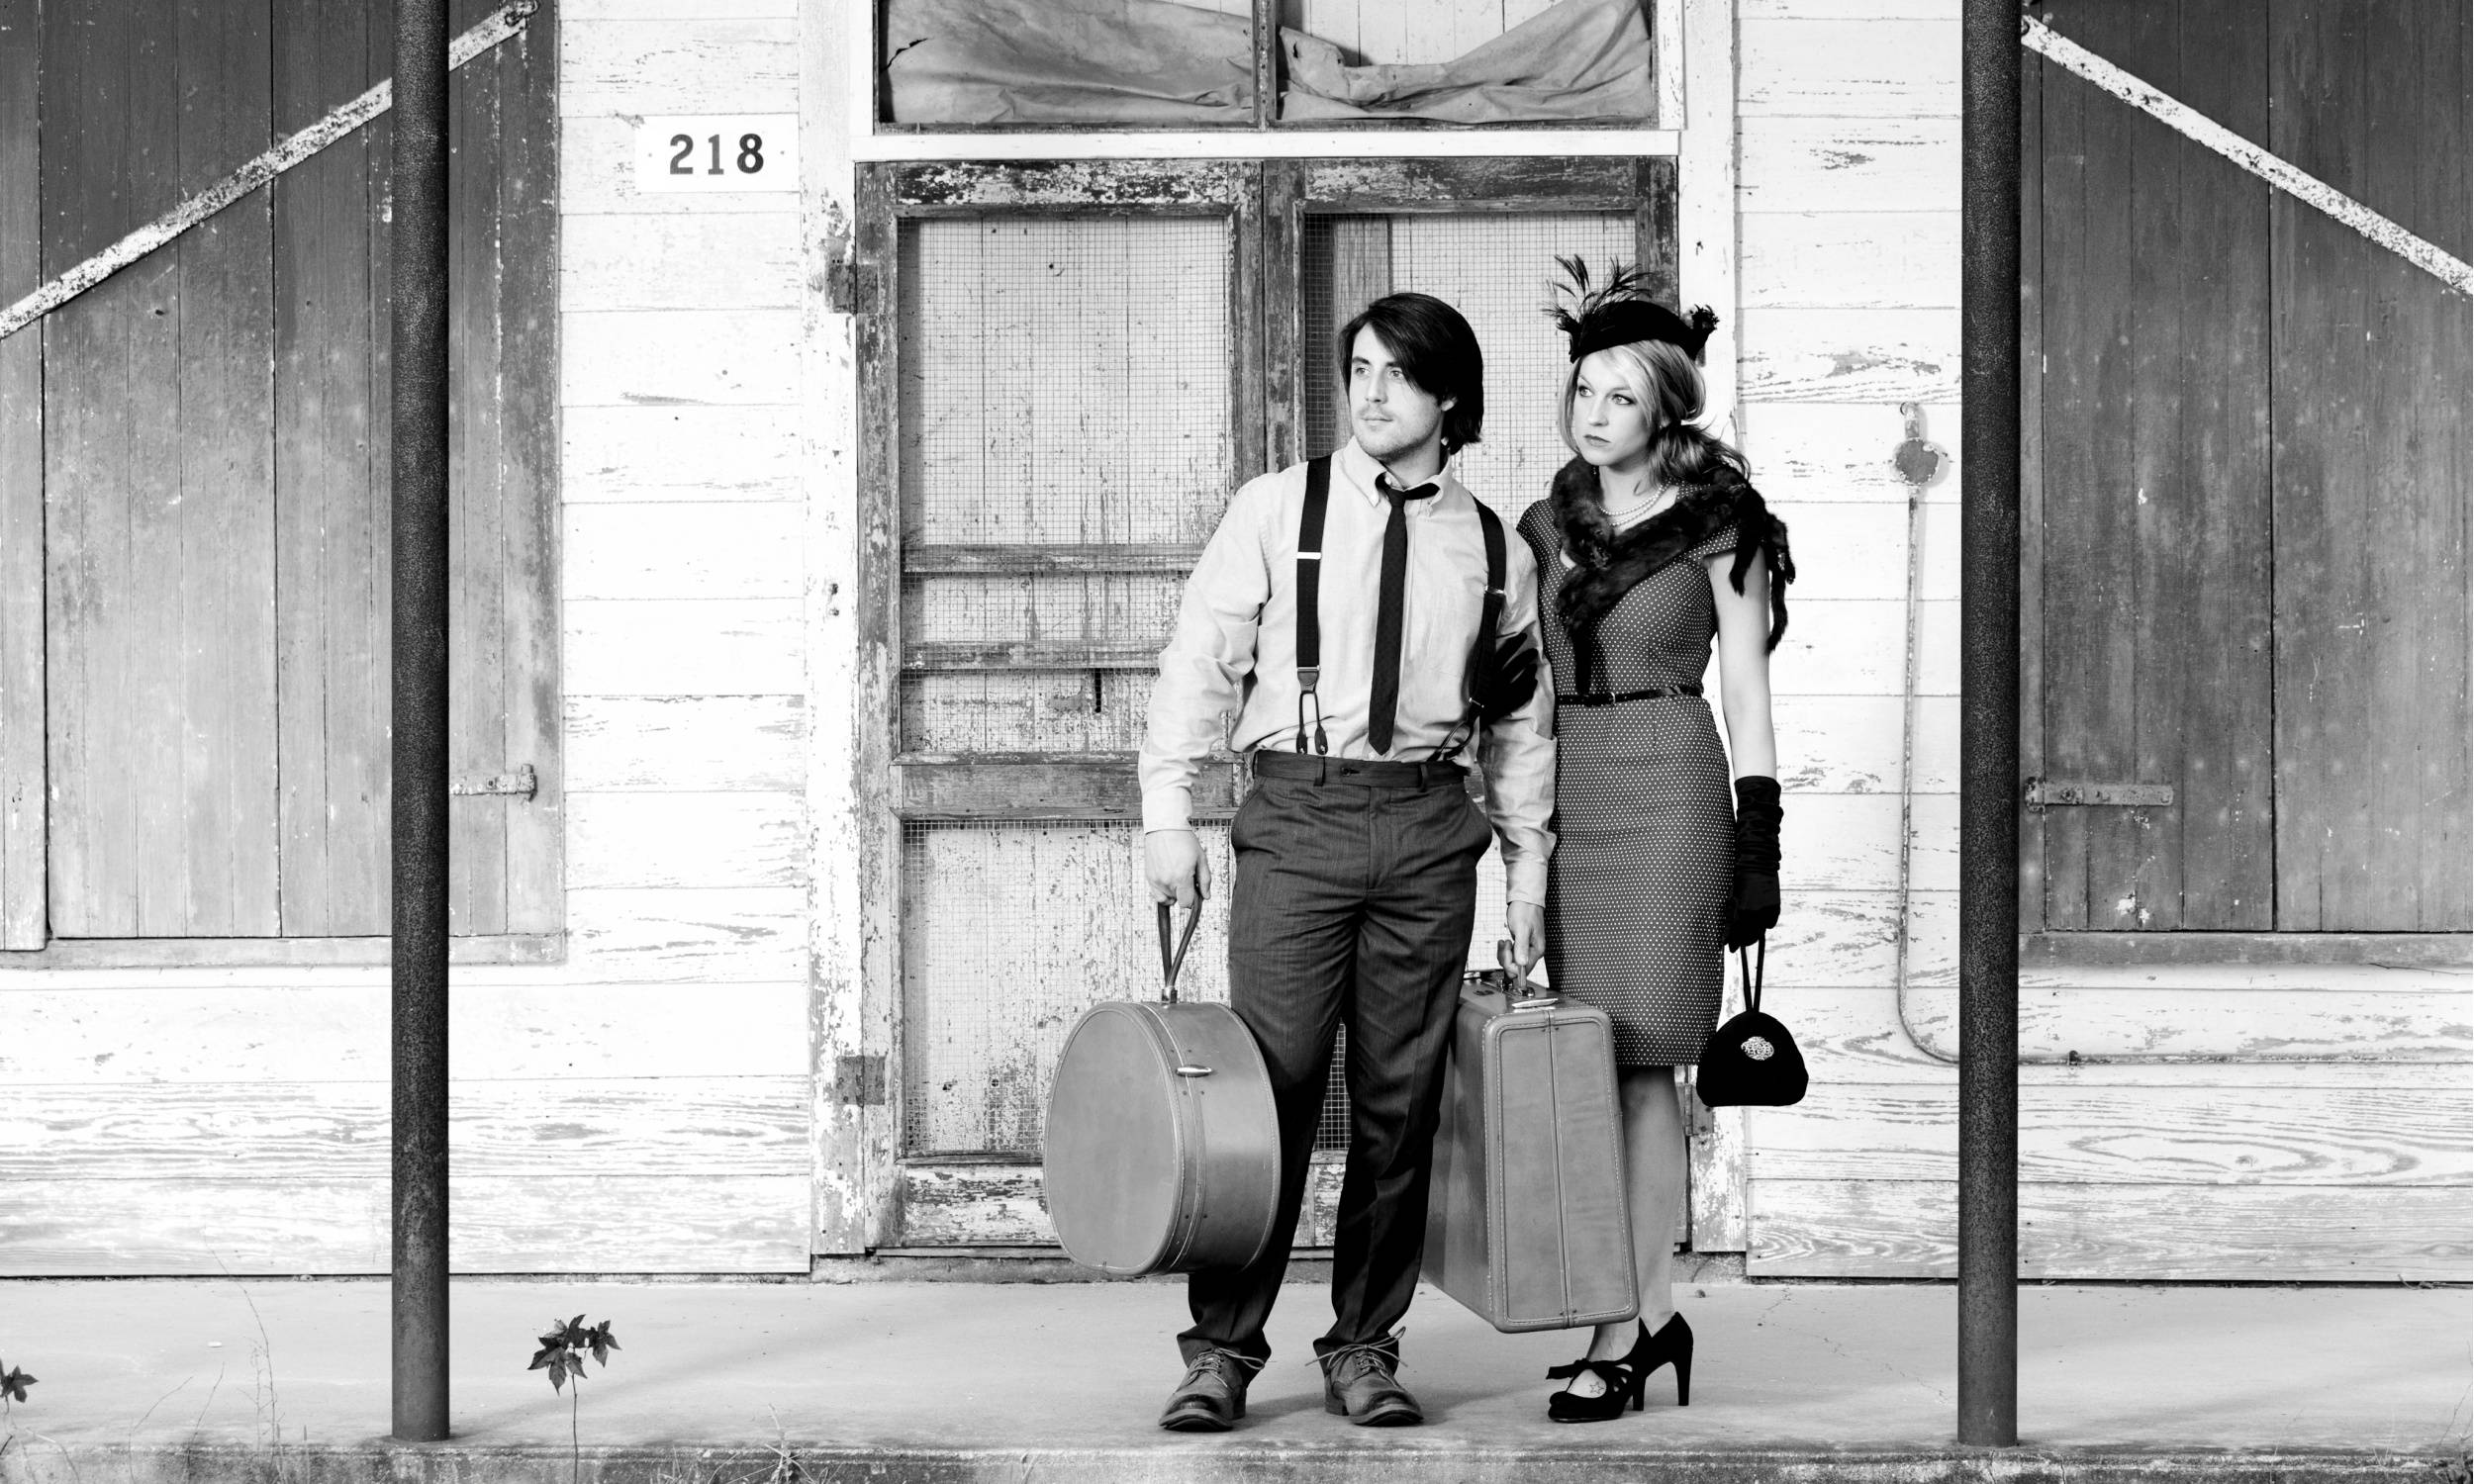 Suspenders vs Braces - Man and Woman Waiting for a Train